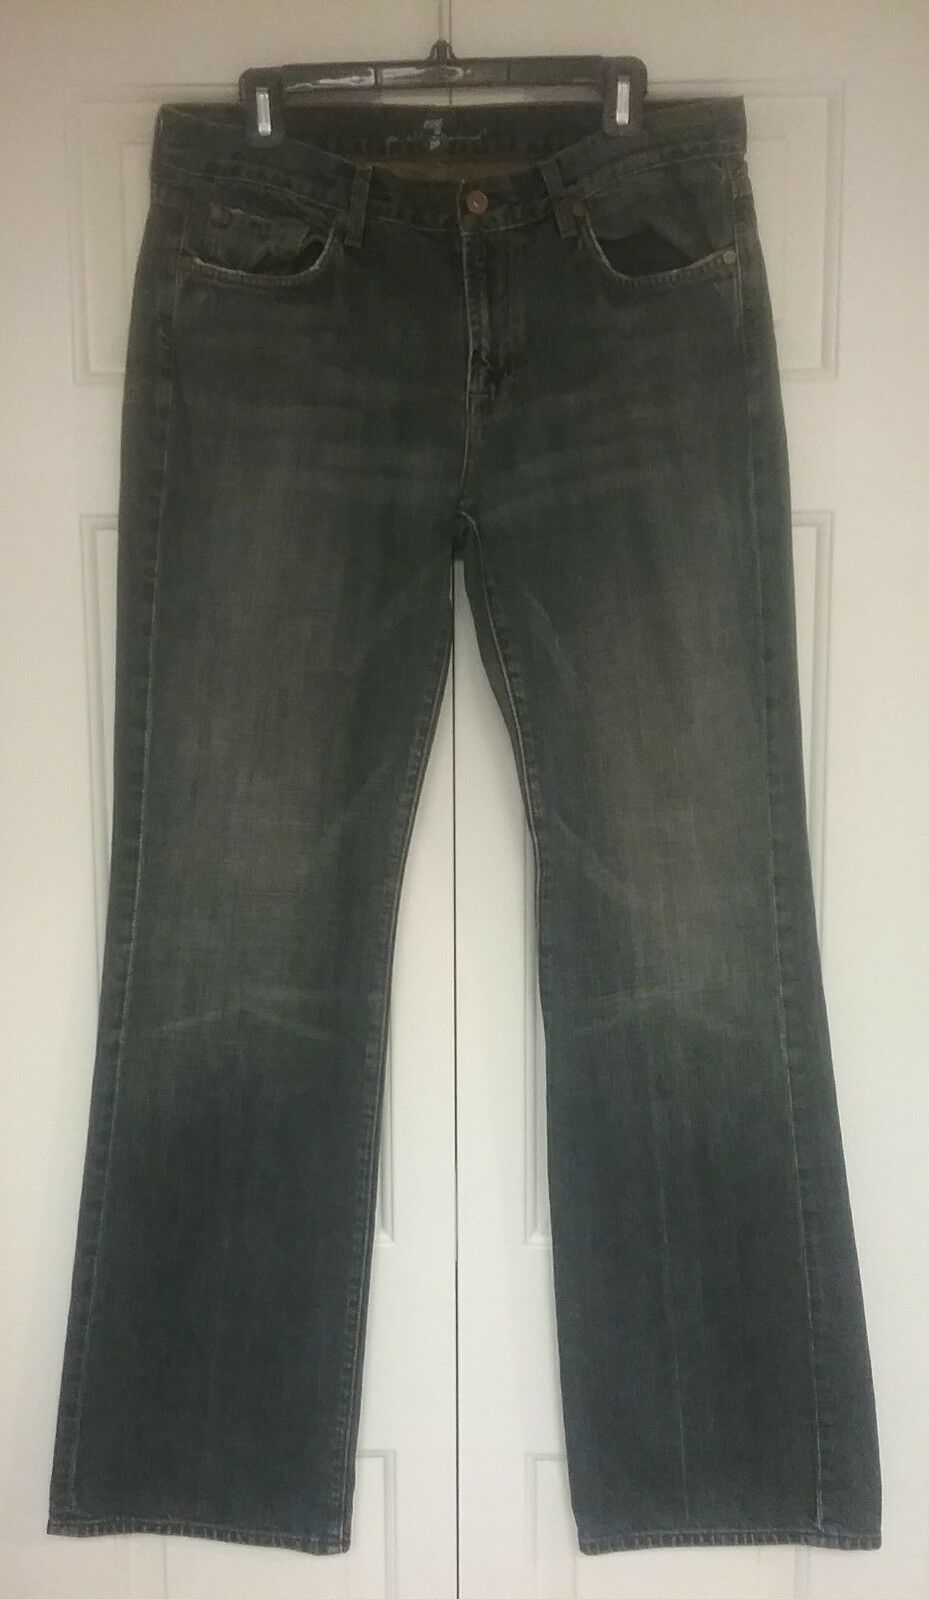 7 For All Mankind Men's Jeans Bootcut Made in USA Cotton Sz 33 Inseam 34